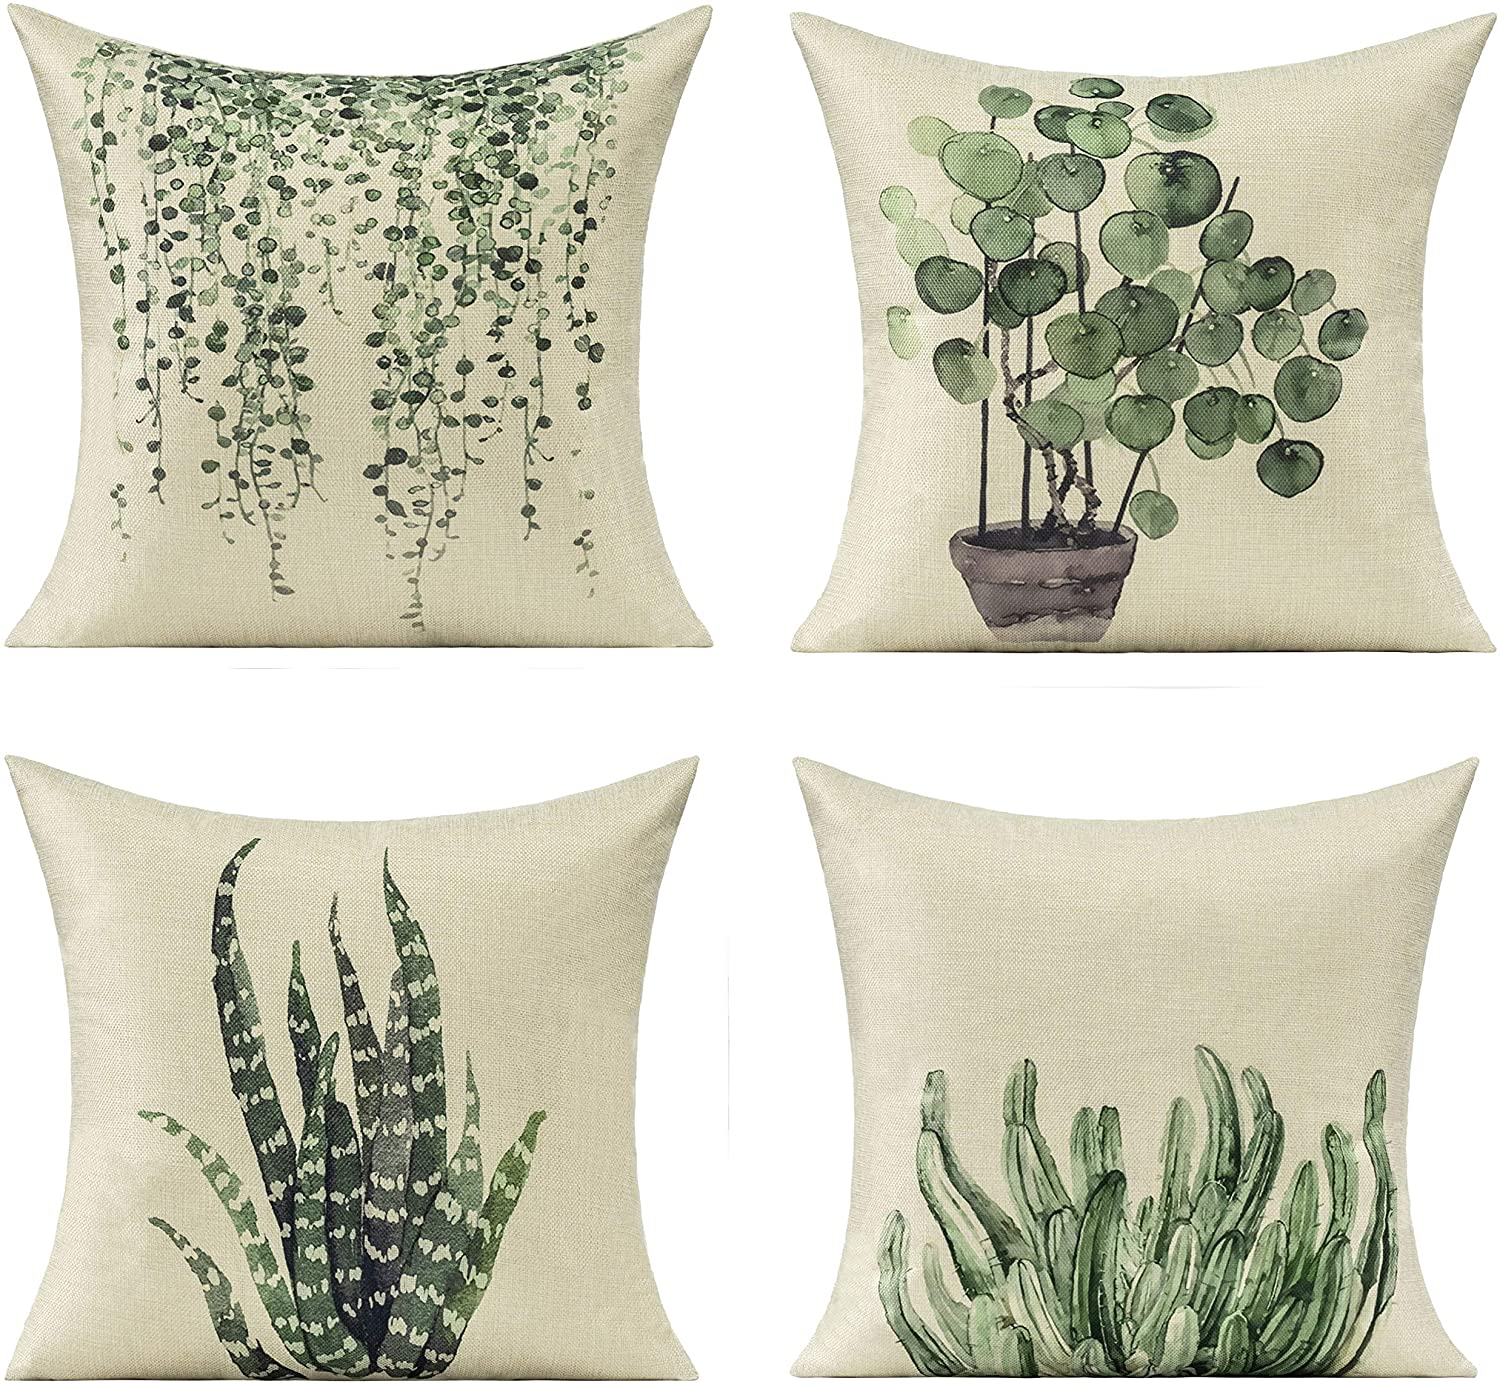 All Smiles Plants Summer Outdoor Throw Pillow Covers for Patio Furniture Garden Bench Porch Spring Green Decorative Cushion Cases Home Decor 20x20 Set of 4 Couch Sofa Accent Pillowcases Indoor